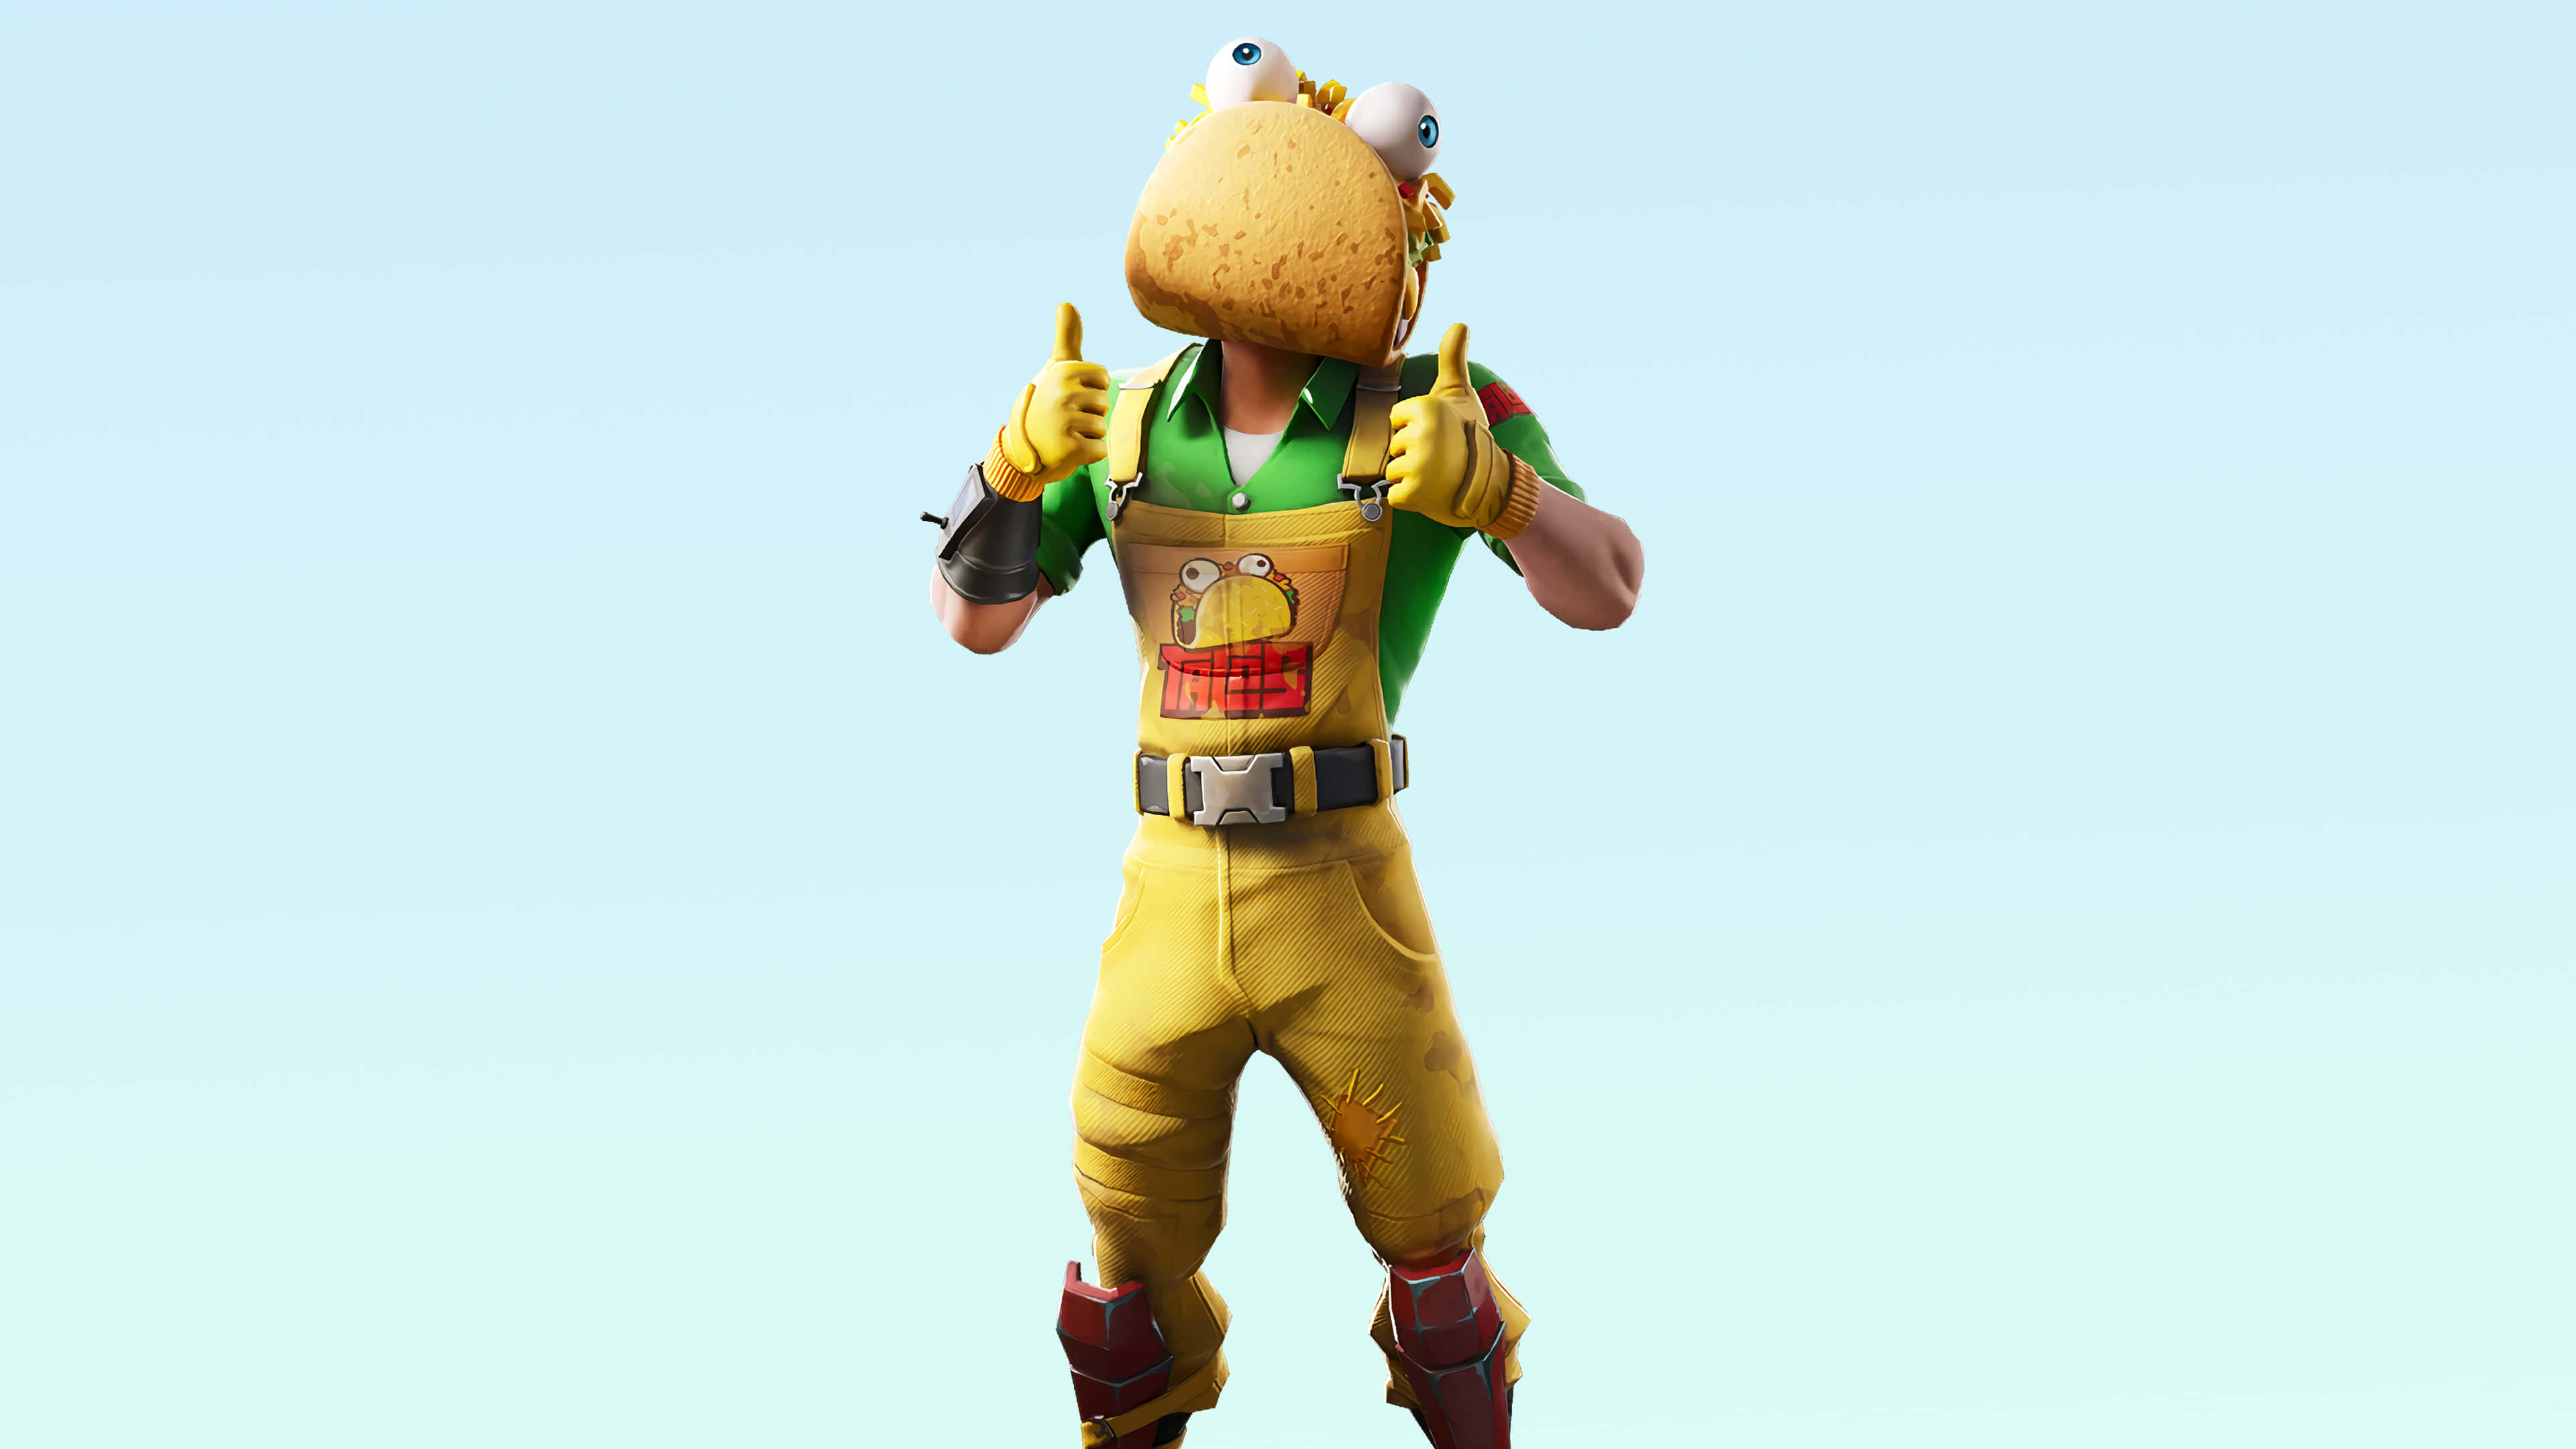 fortnite leftovers set guaco skin outfit uhd 4k wallpaper